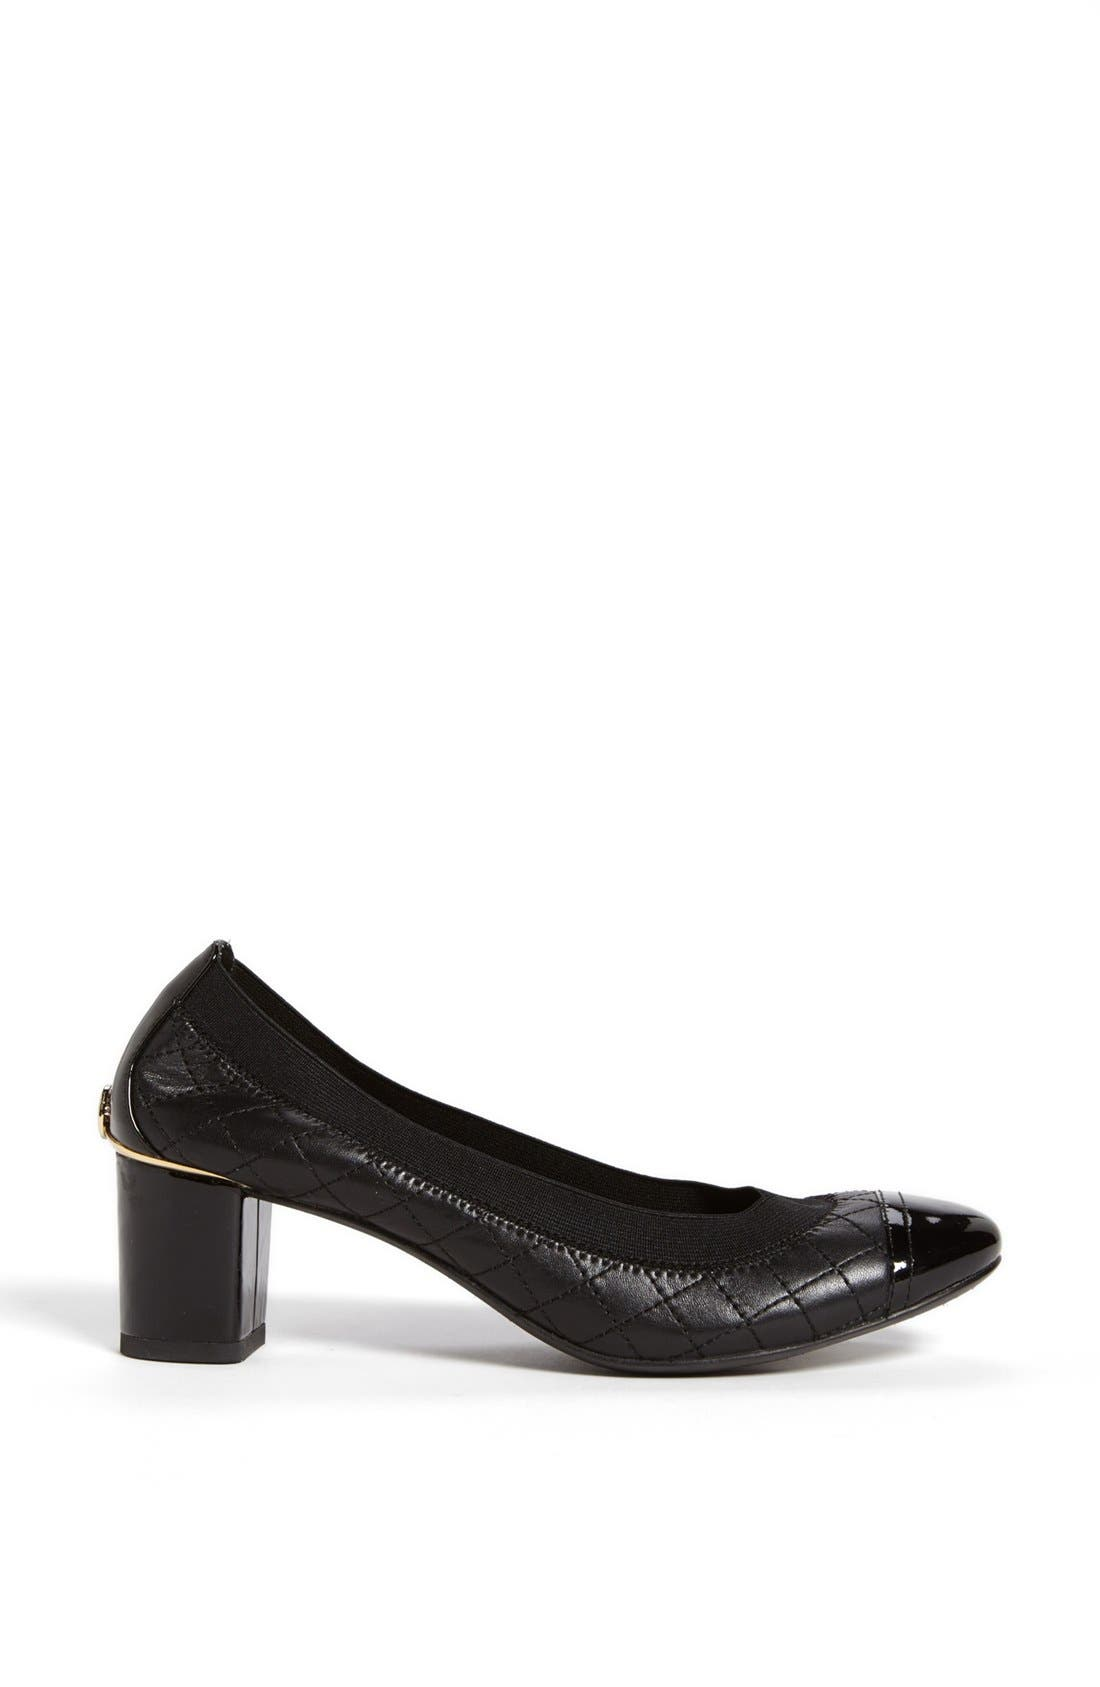 Alternate Image 3  - Tory Burch 'Carrie' Quilted Leather Cap Toe Pump